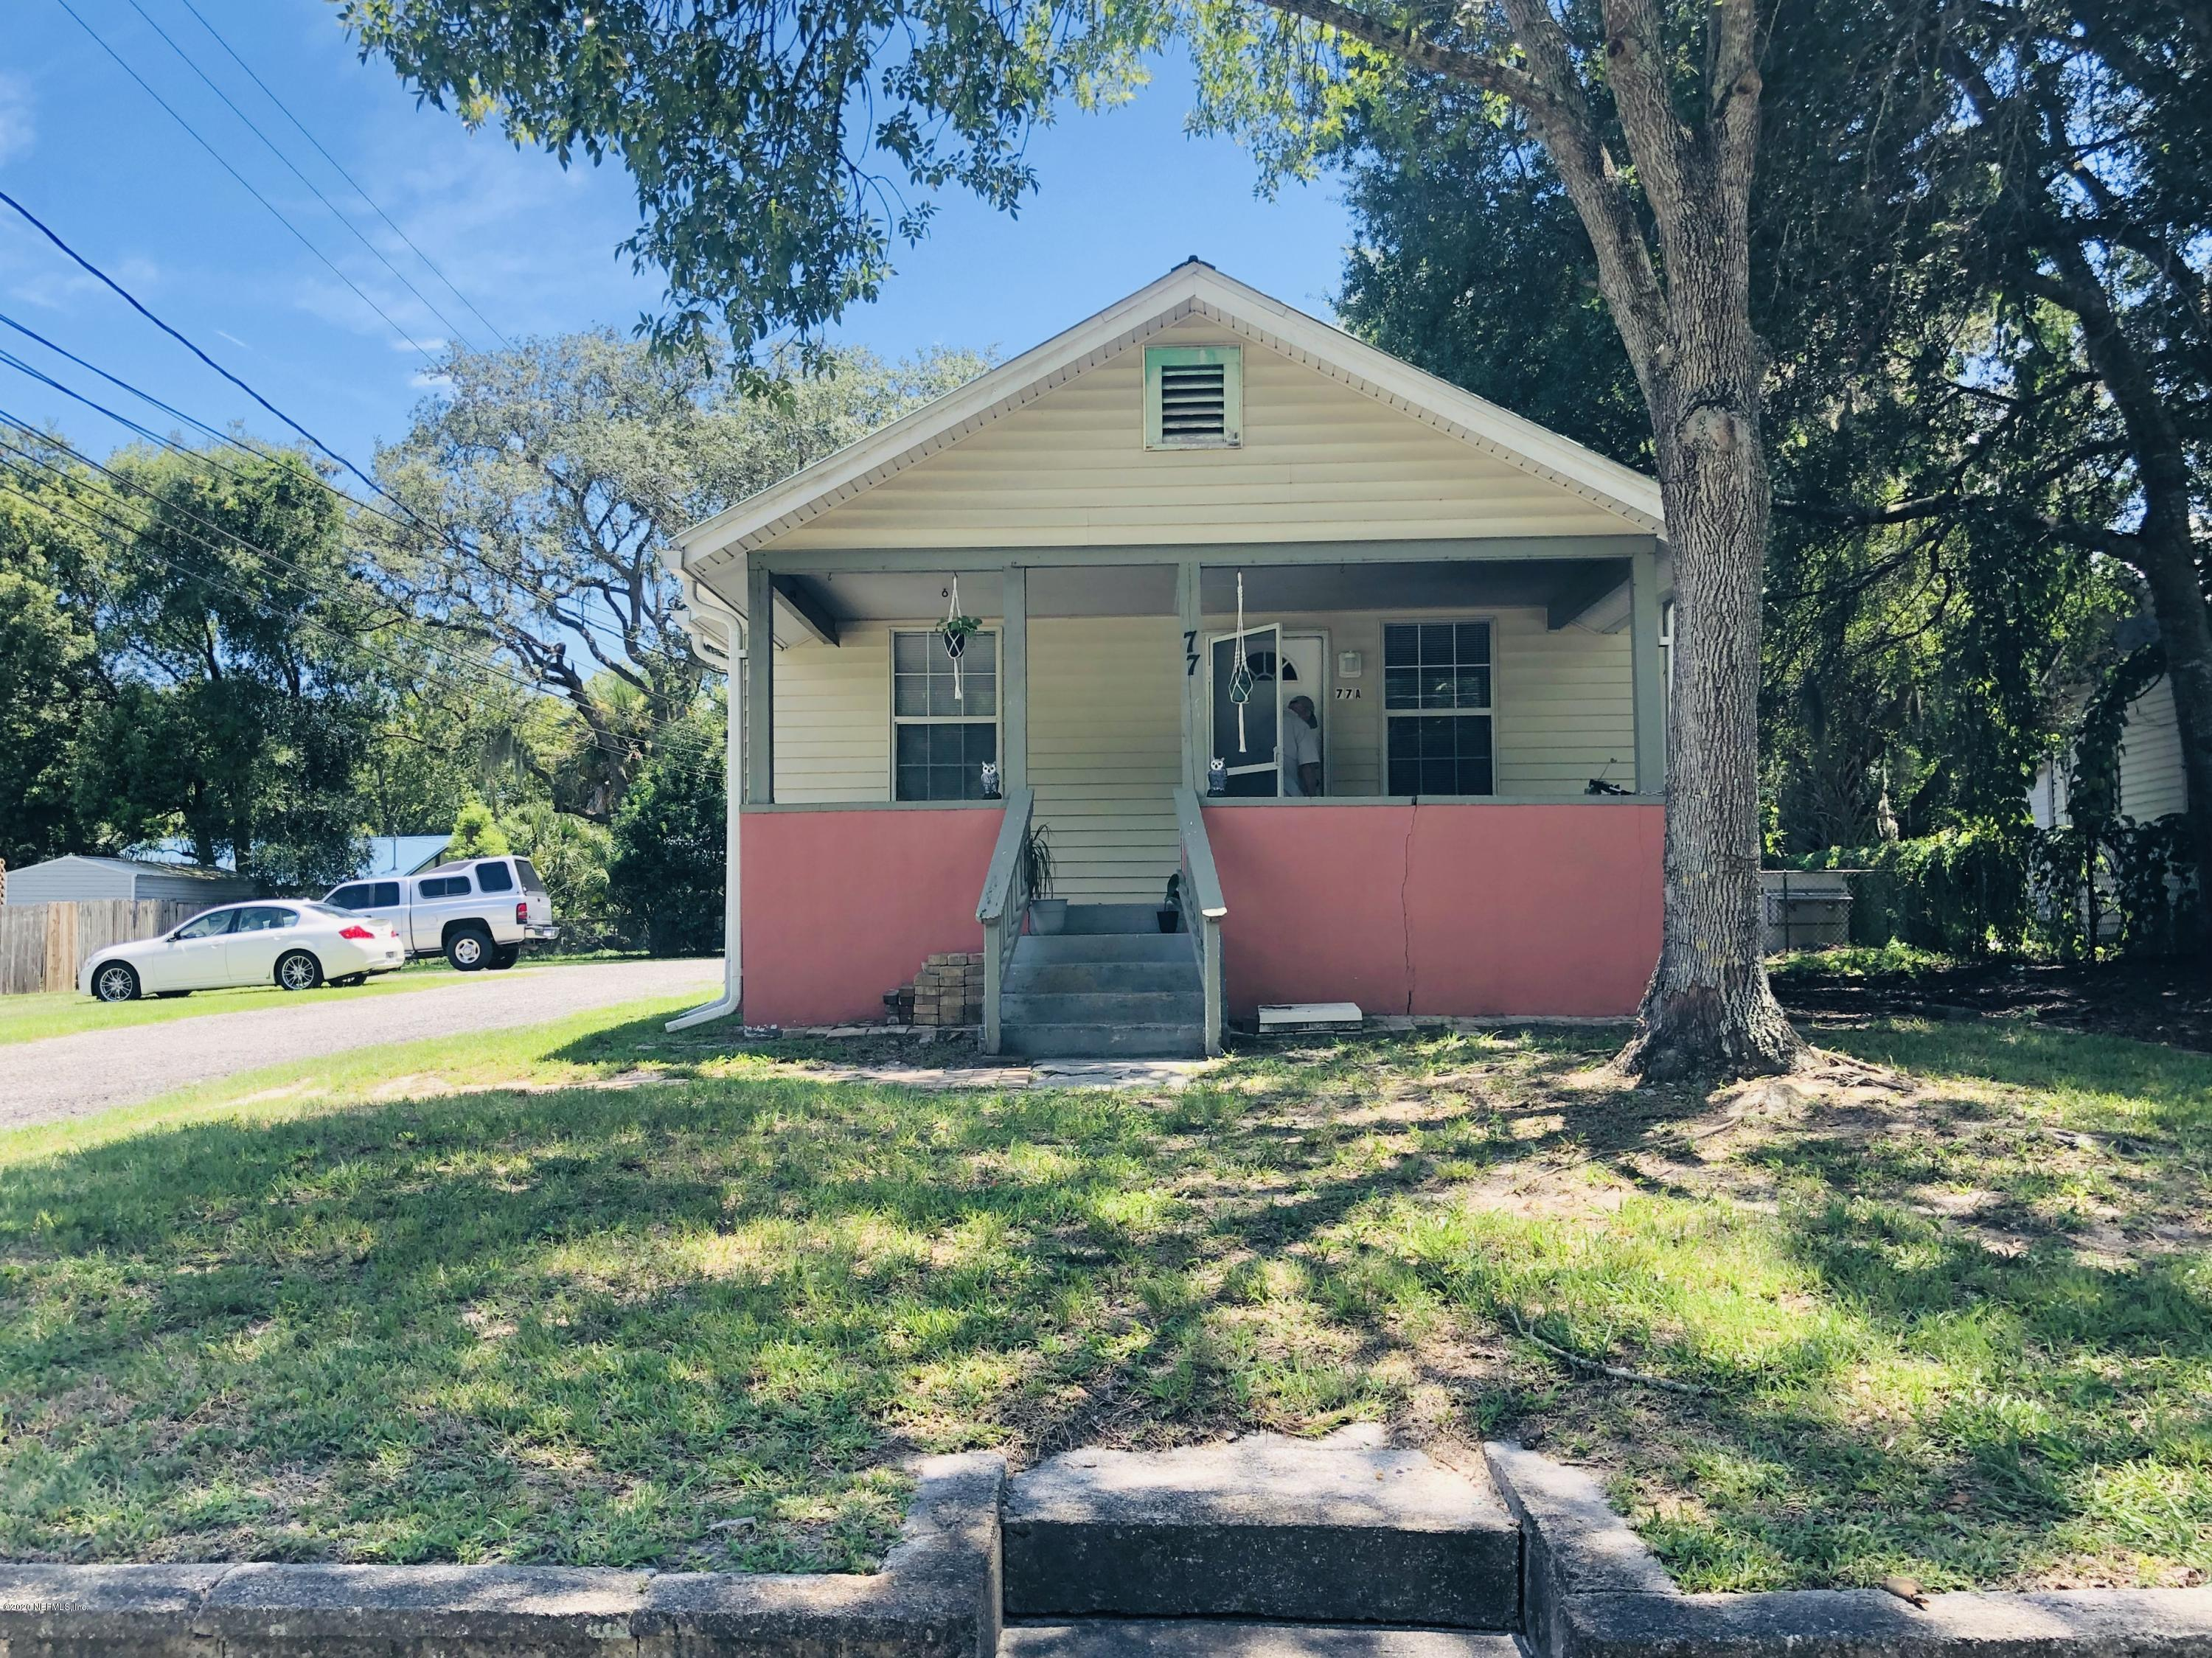 77 ANDERSON, ST AUGUSTINE, FLORIDA 32084, 5 Bedrooms Bedrooms, ,3 BathroomsBathrooms,Investment / MultiFamily,For sale,ANDERSON,1067093